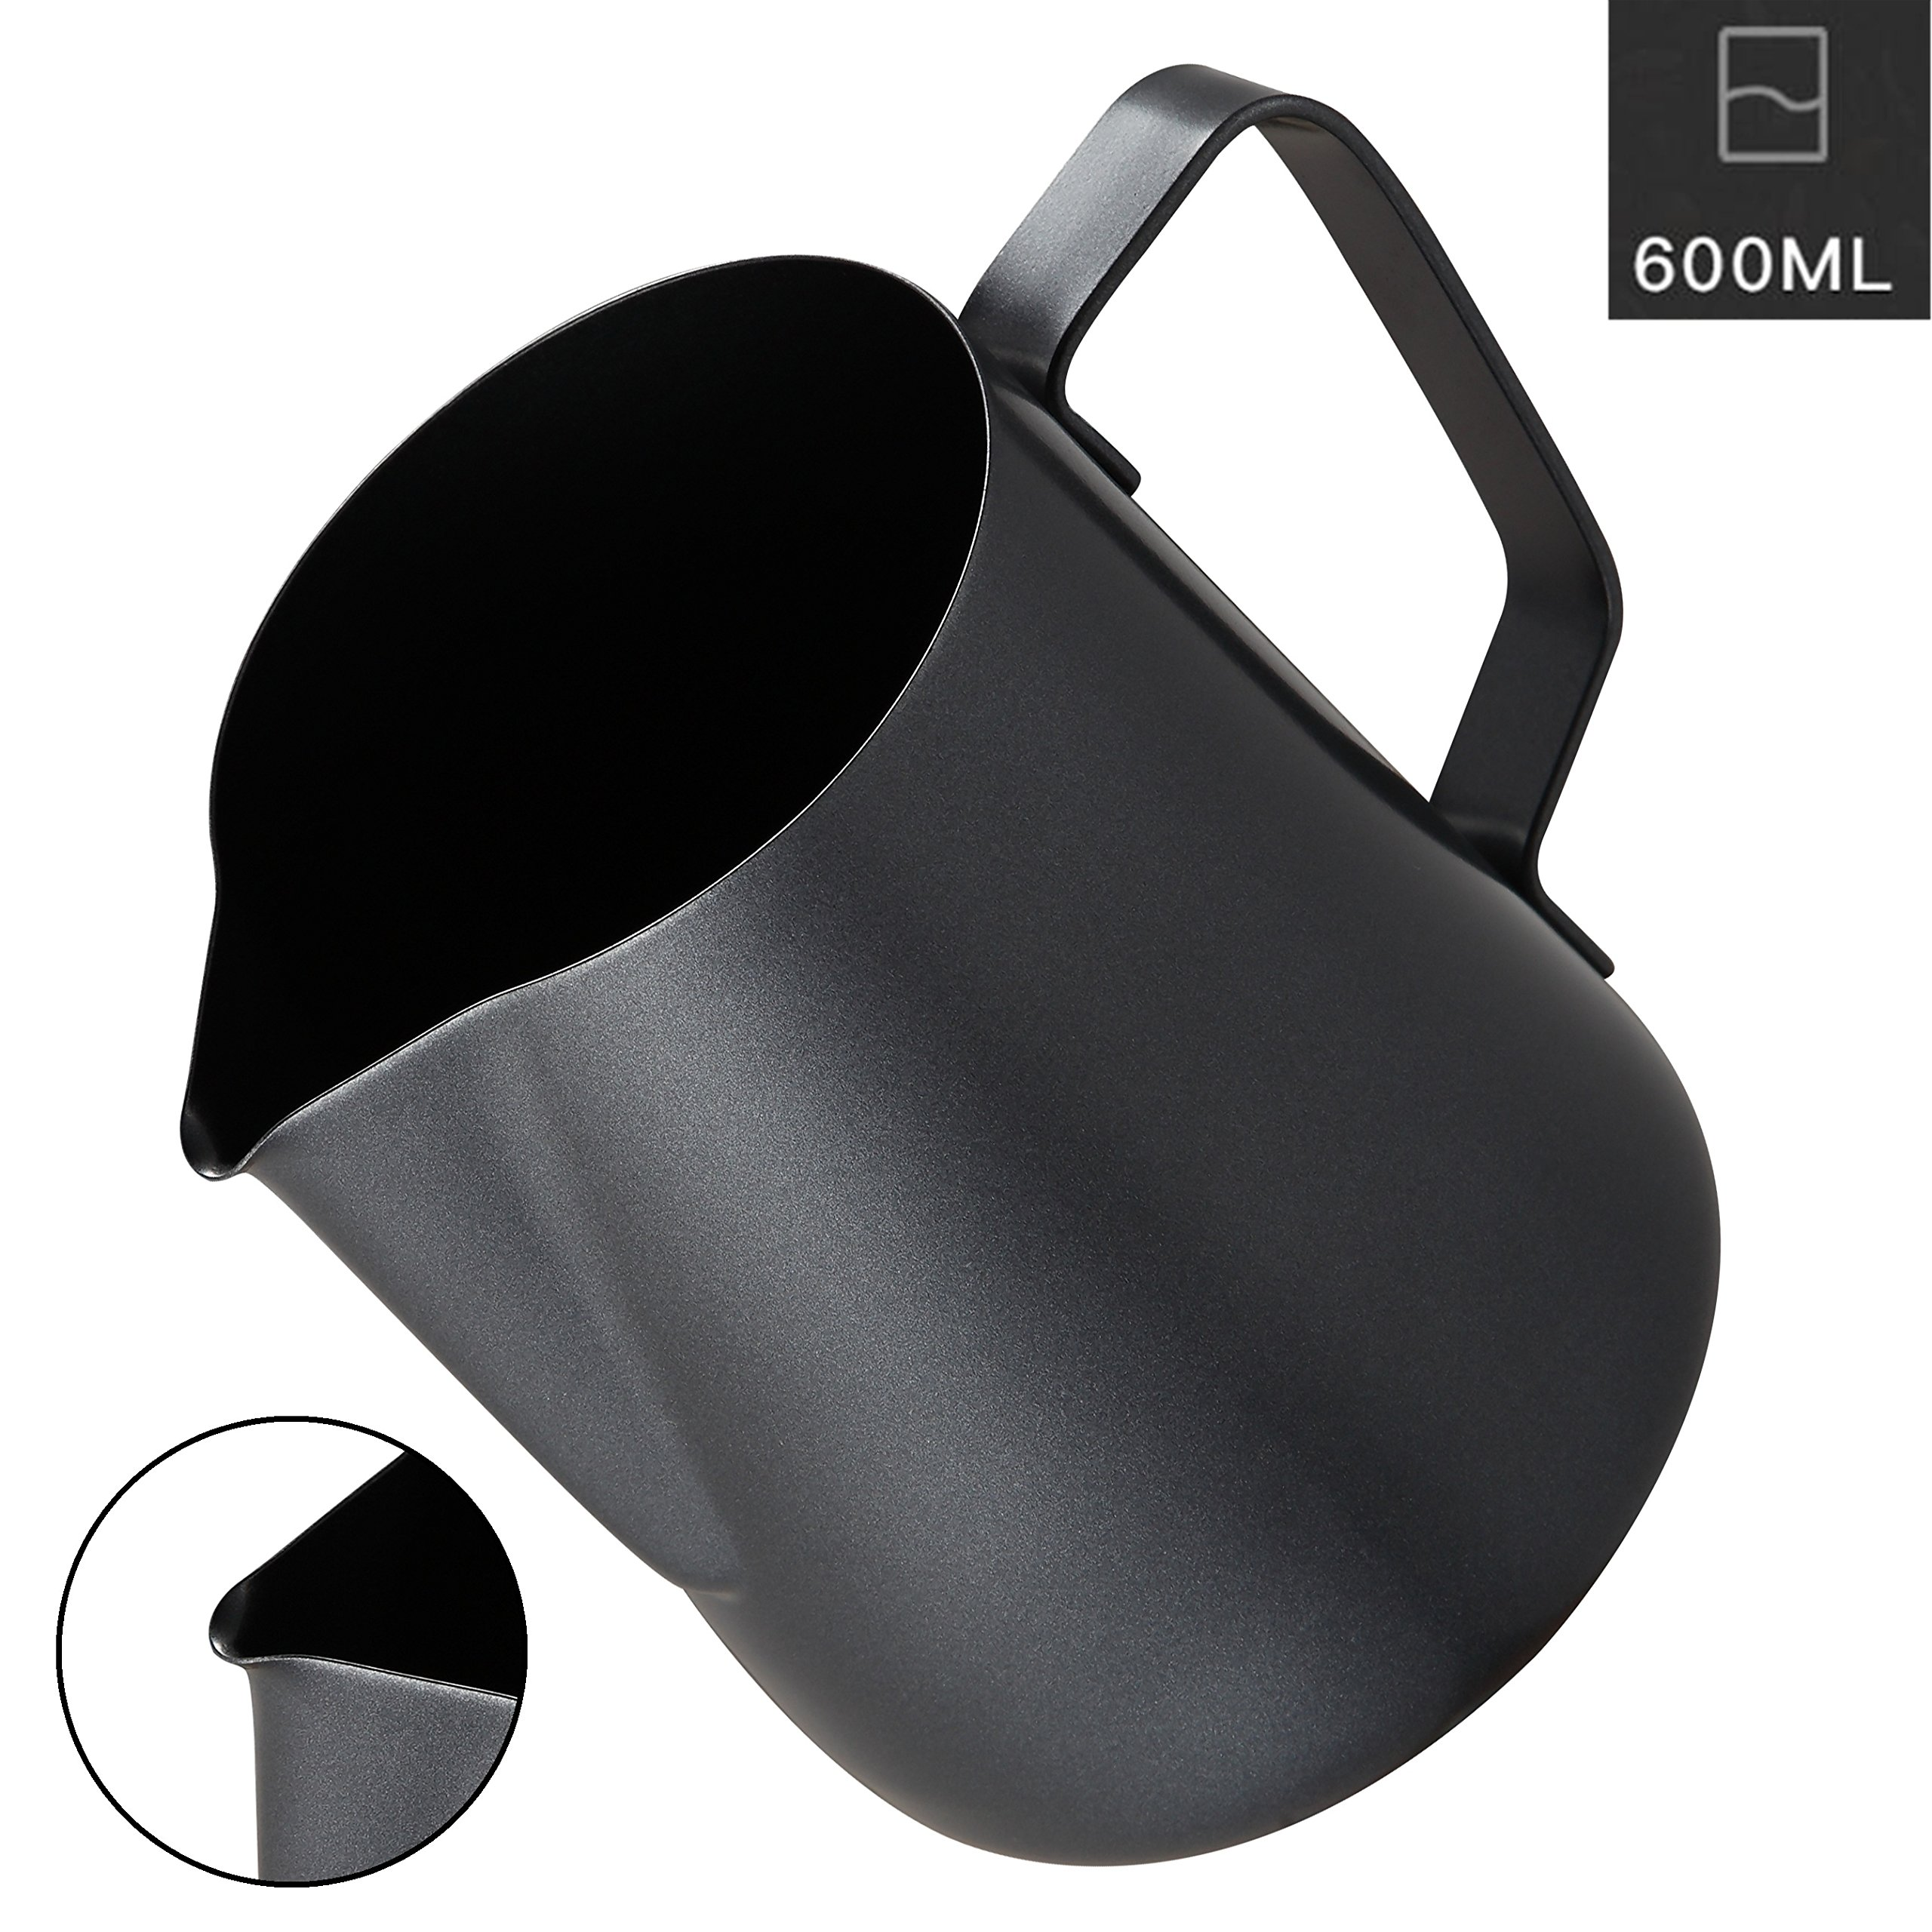 Milk Frothing Pitcher, Coffee4u Stainless Steel Creamer Non-Stick Teflon Frothing Pitcher 20 oz (600 ml), Matte Finish